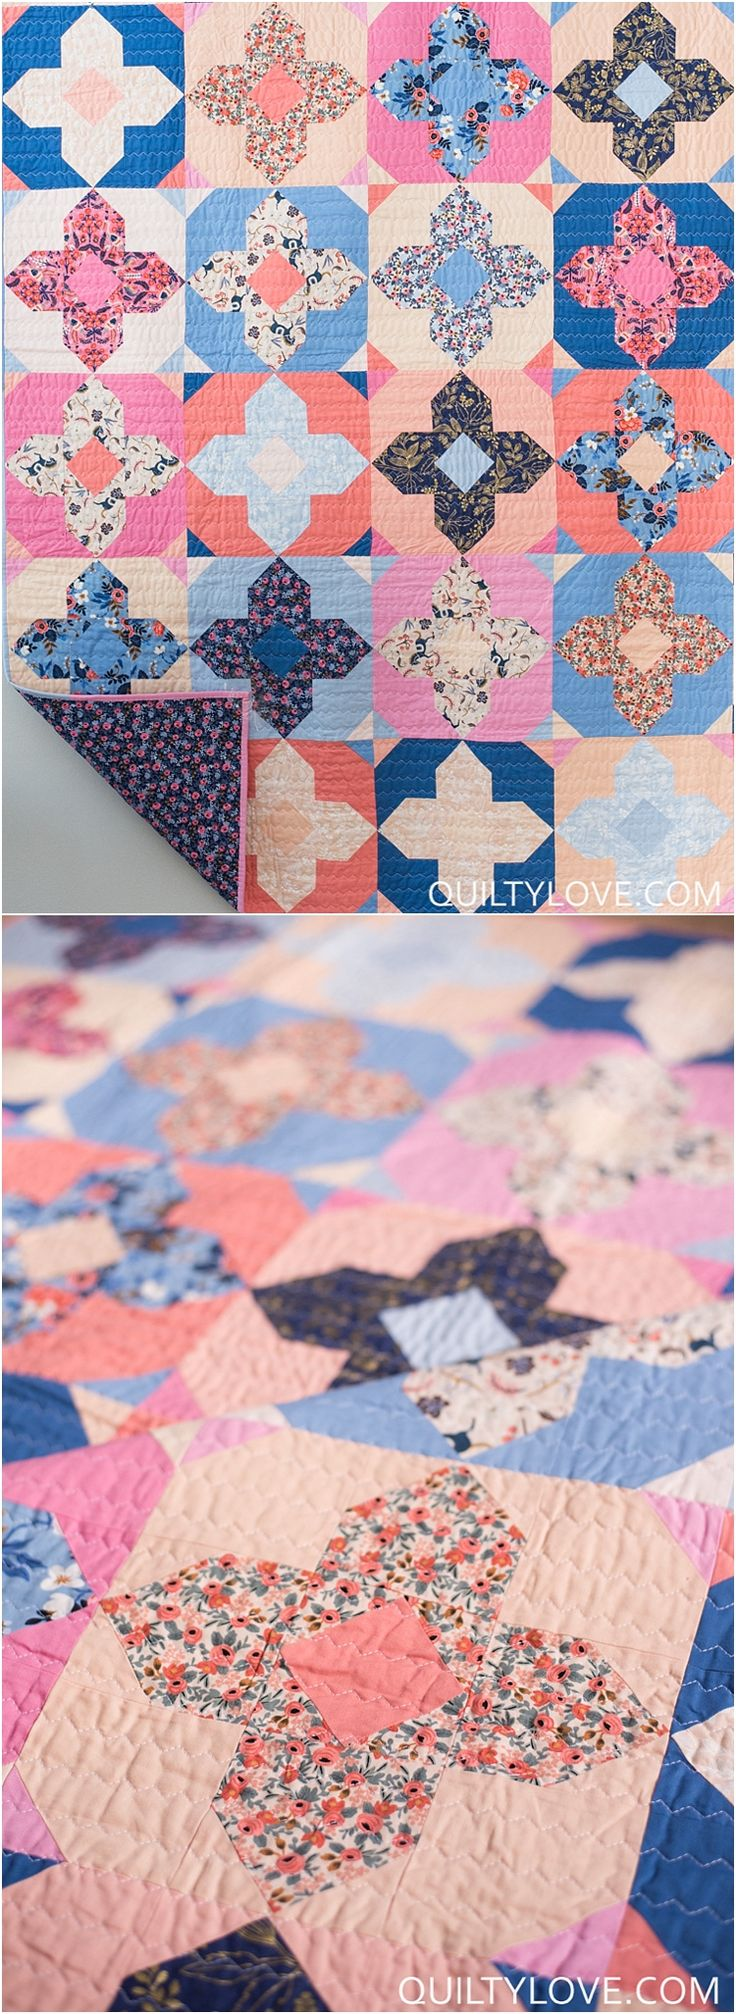 809 best Quilt images on Pinterest | Quilt blocks, Quilt designs and ...